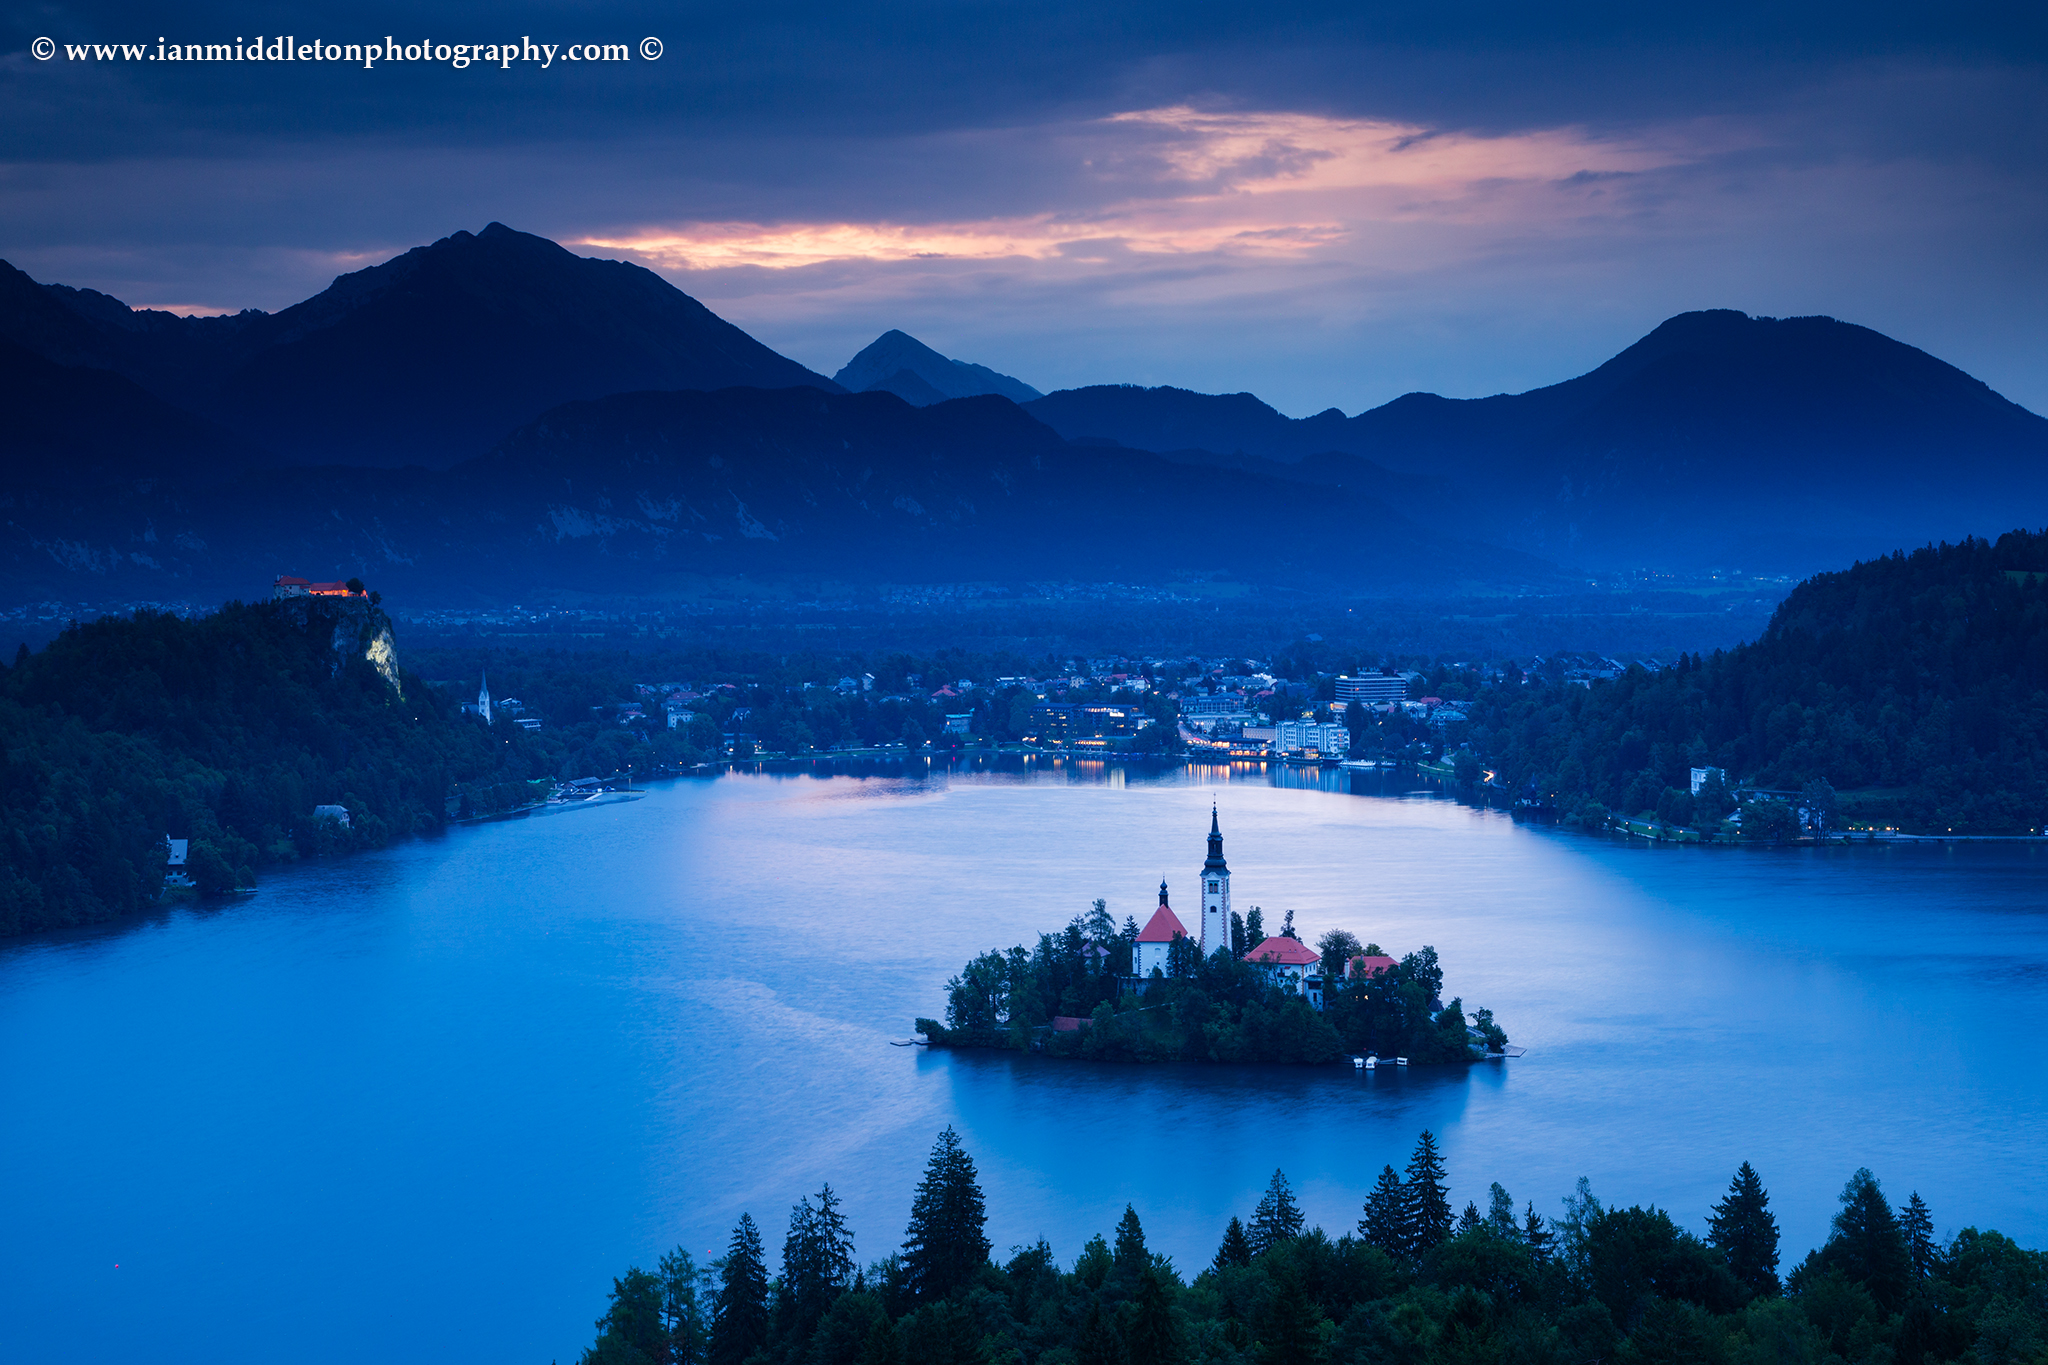 Early sunrise at Lake Bled. View across Lake Bled to the island church and clifftop castle from Ojstrica, Slovenia.